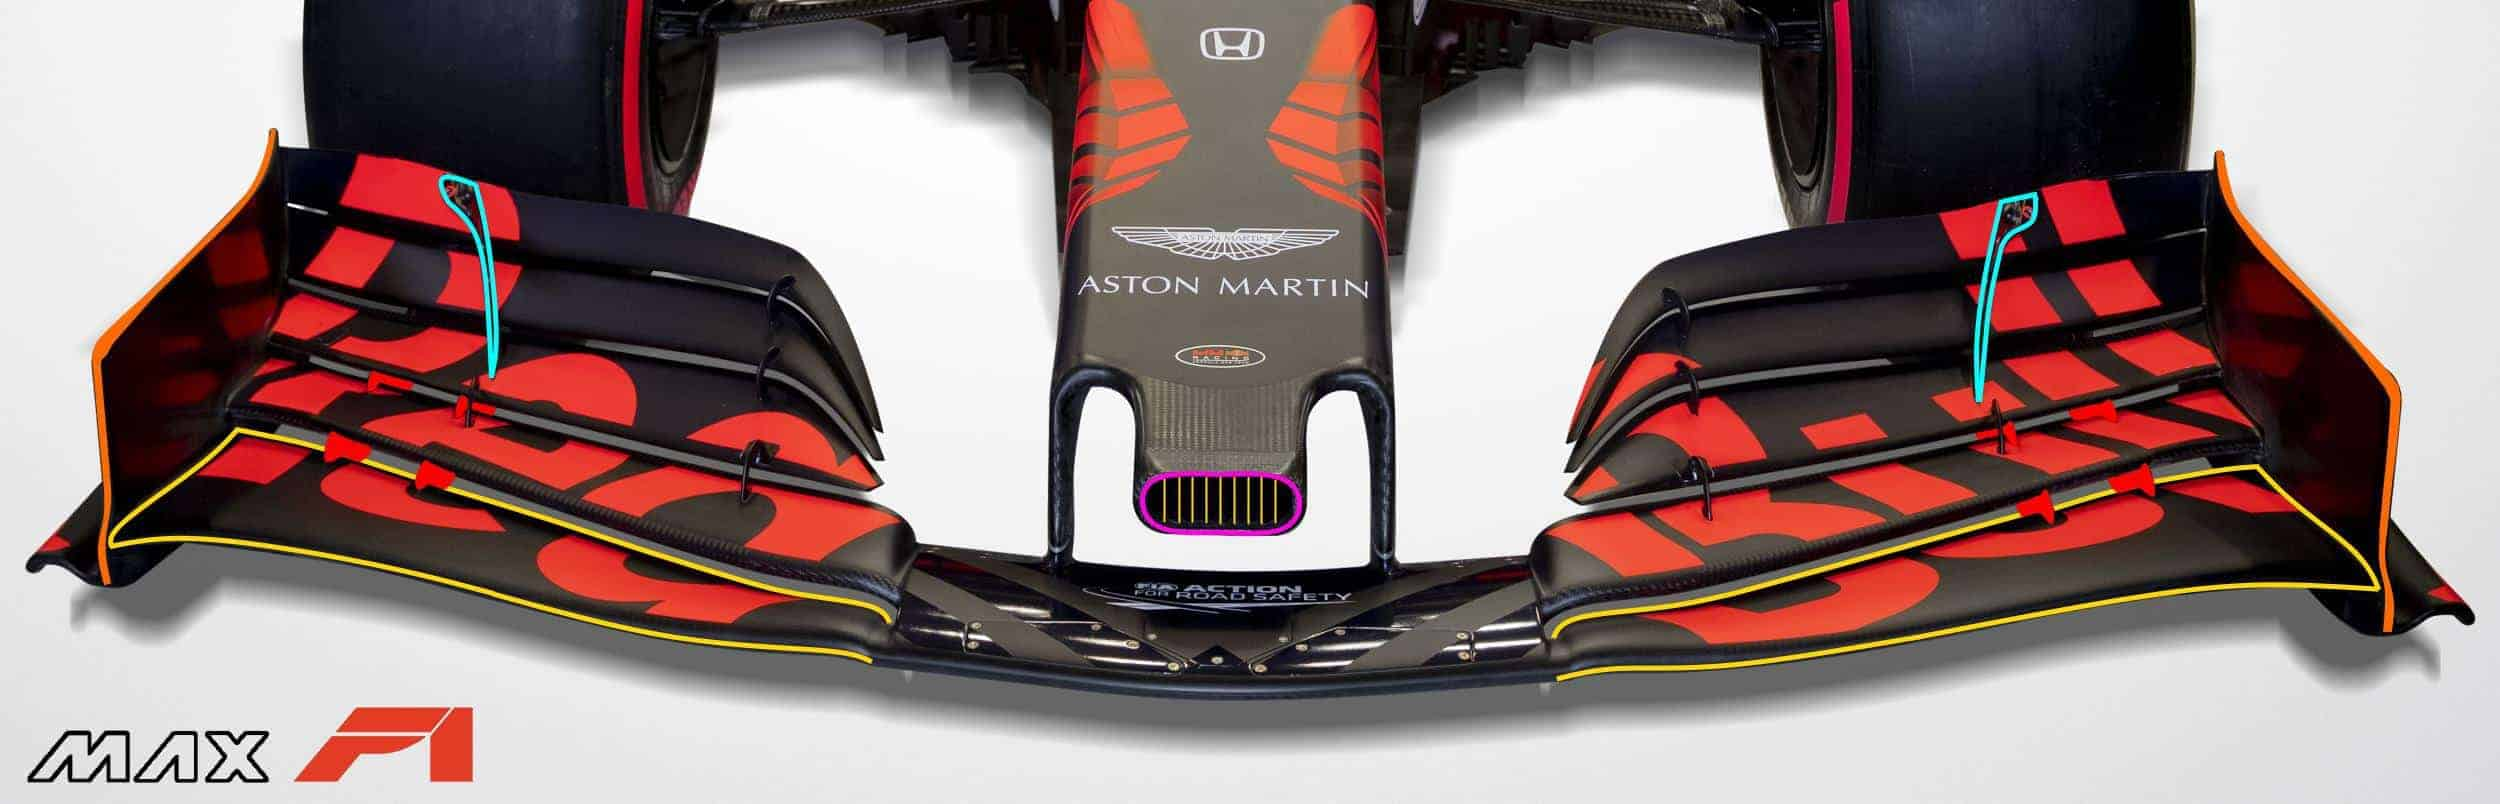 2019 Red Bull RB15 Honda launch pictures nose and front wing Photo Red Bull Edited by MAXF1net